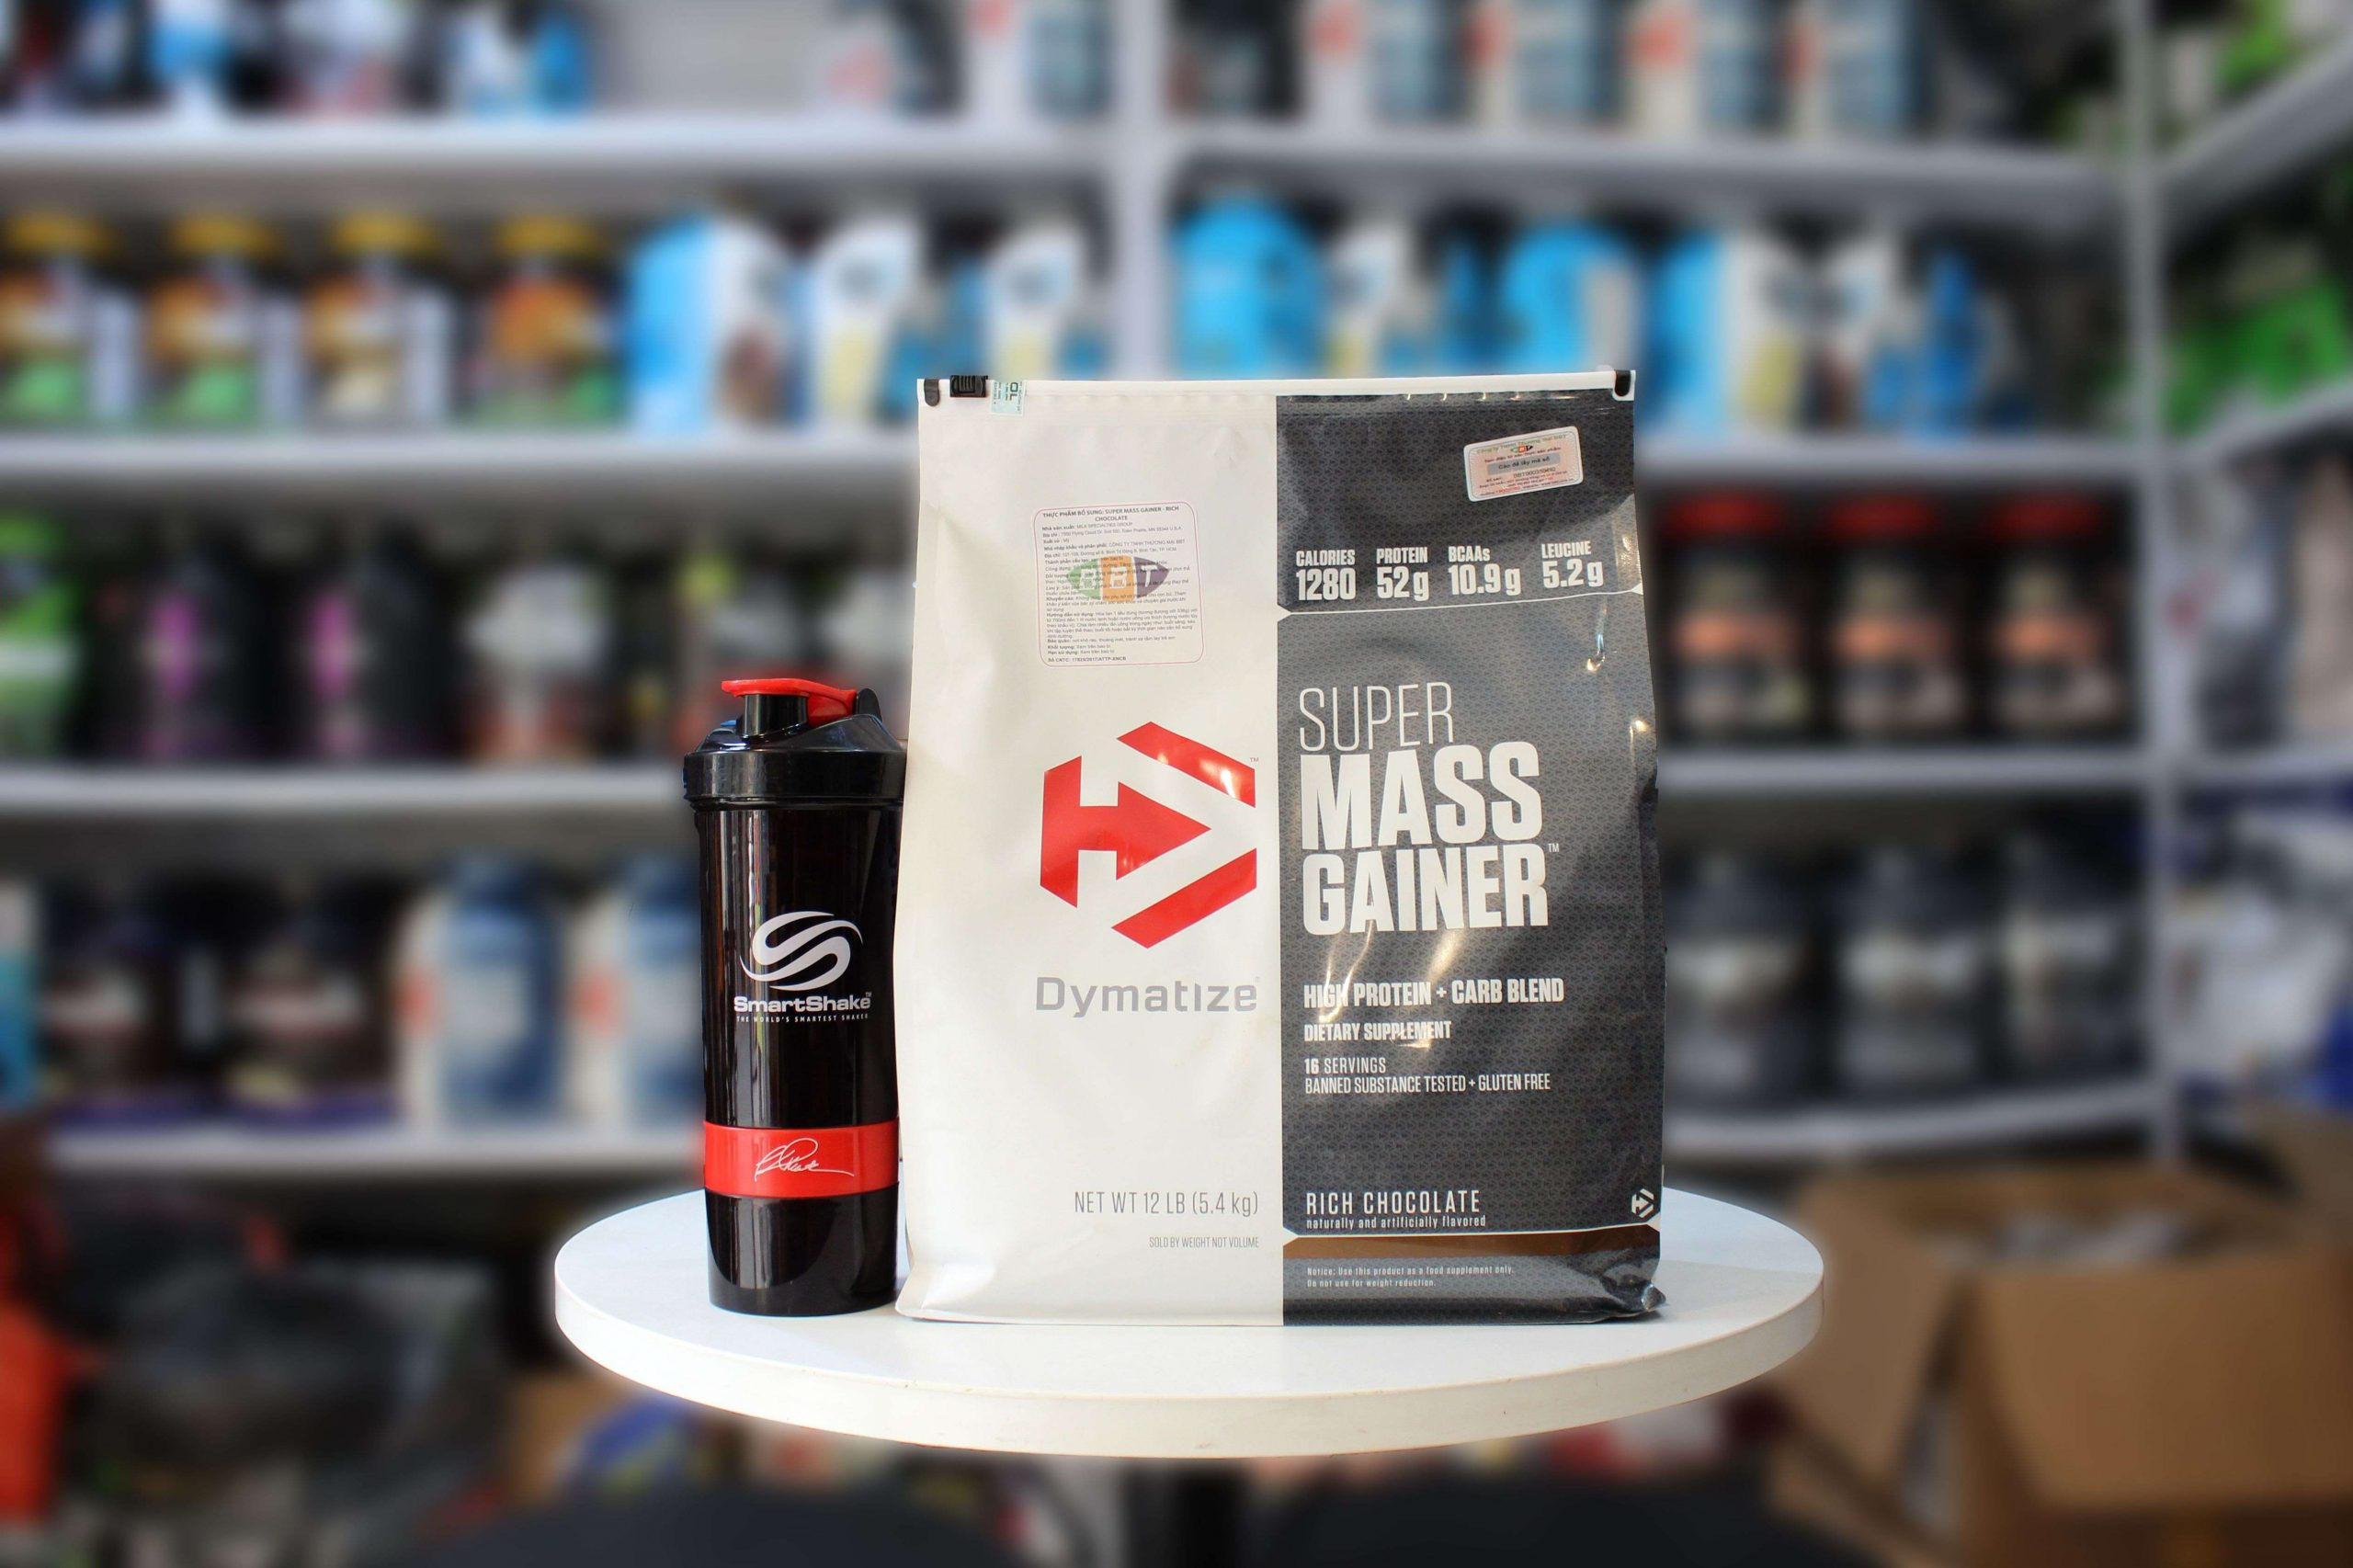 Uong Super Mass Gainer co tac dung phu khong compressed 1 scaled